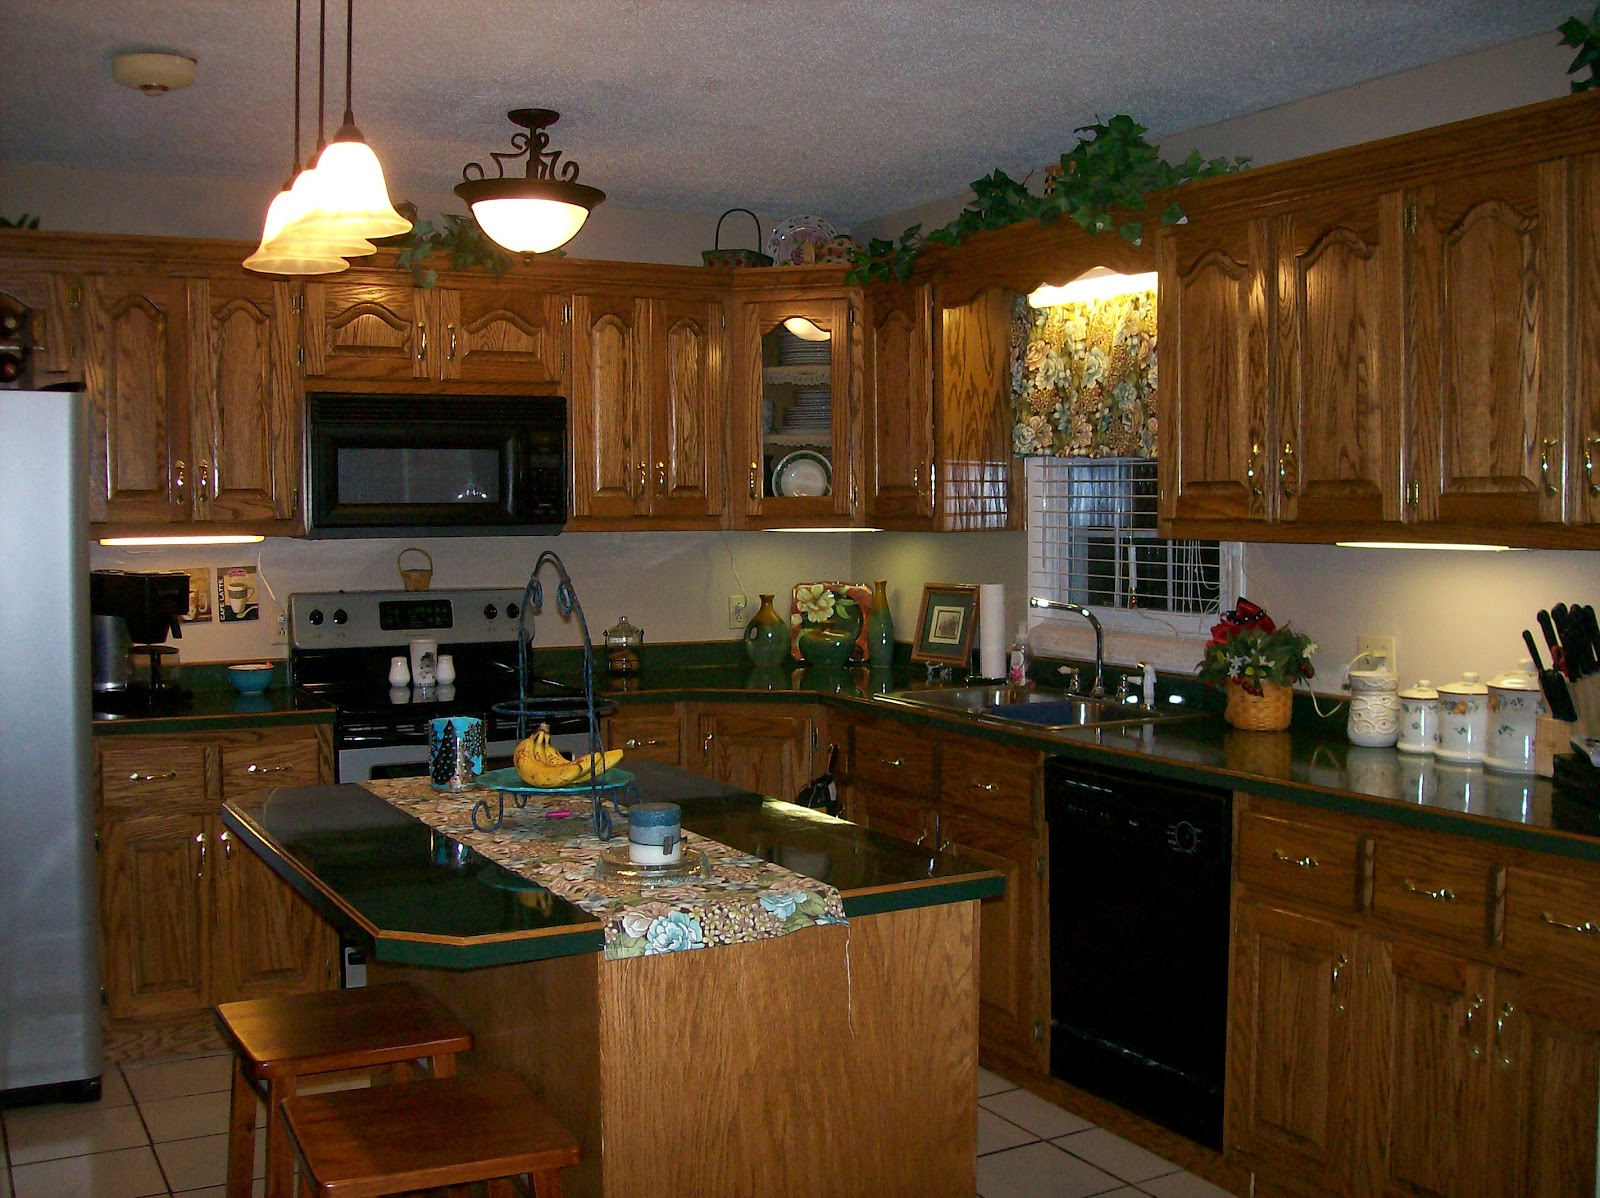 Highland Home Memories: Home is where the KITCHEN is